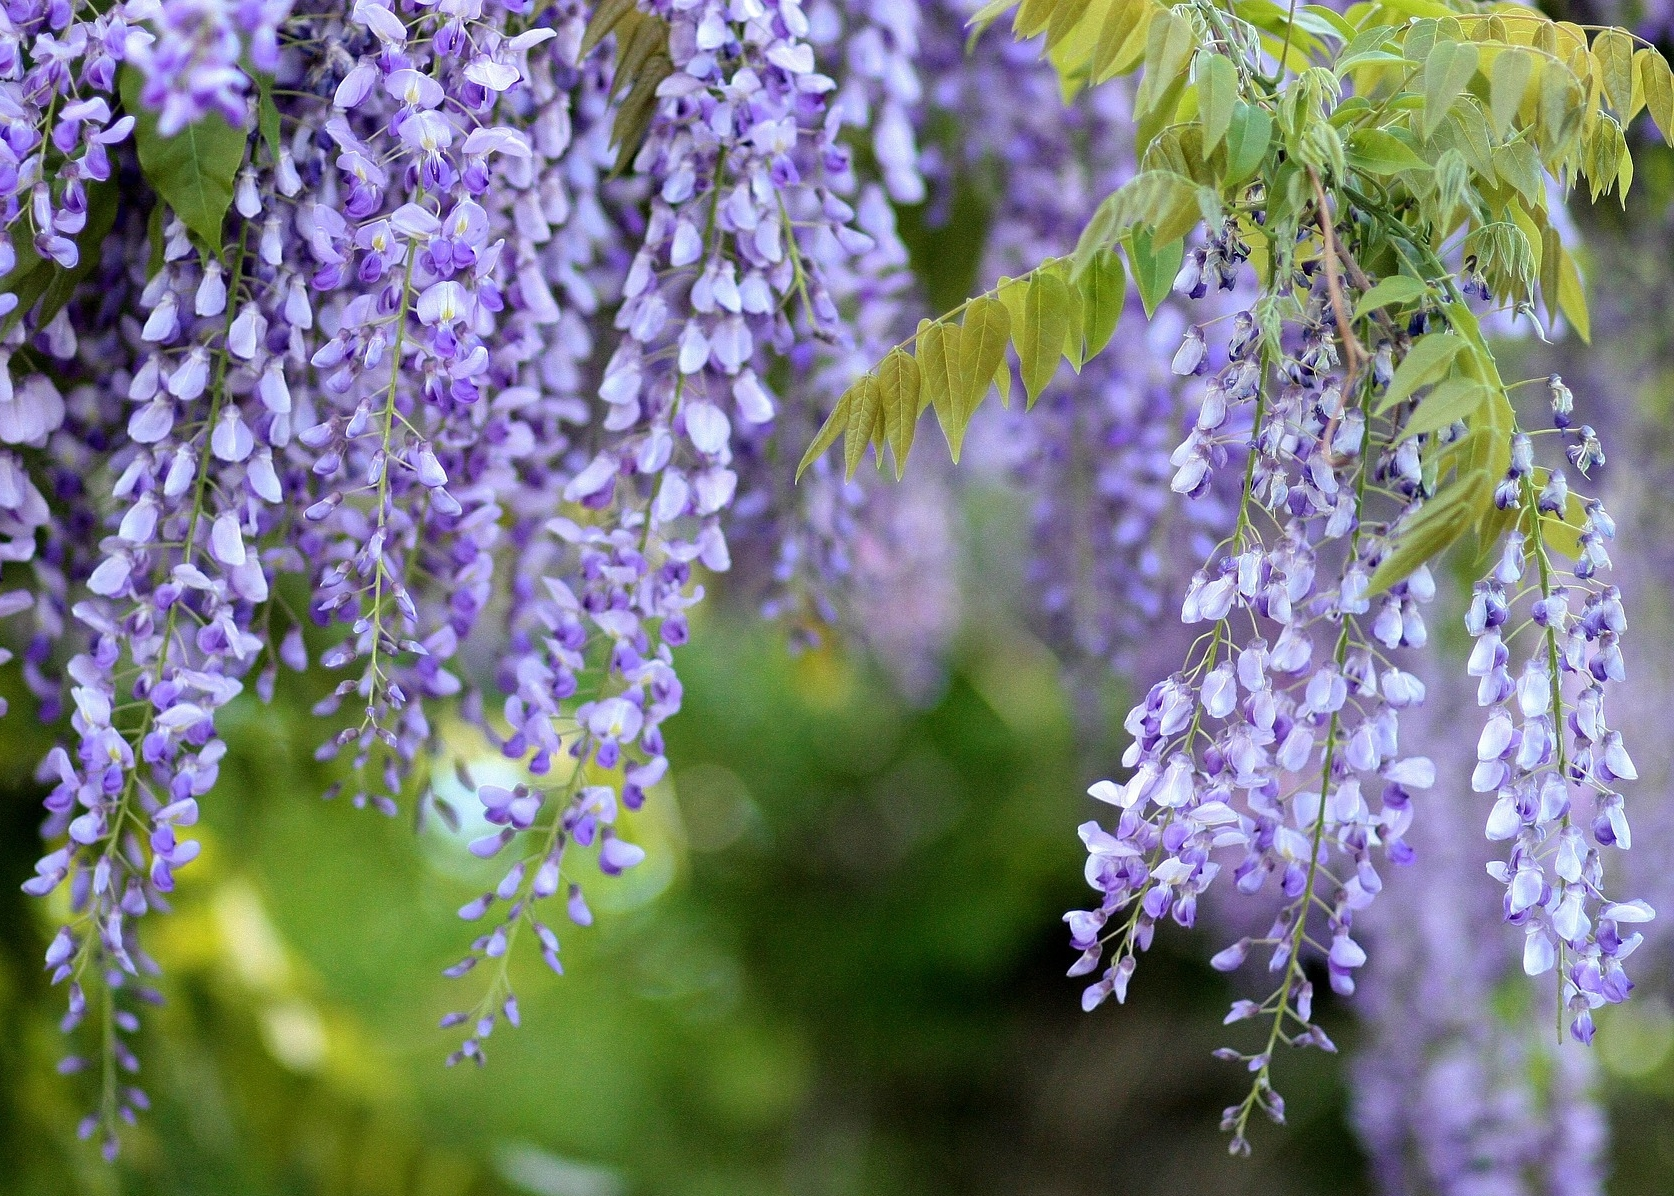 Wisteria How To Plant Grow And Care For Vines The Old Farmer S Almanac